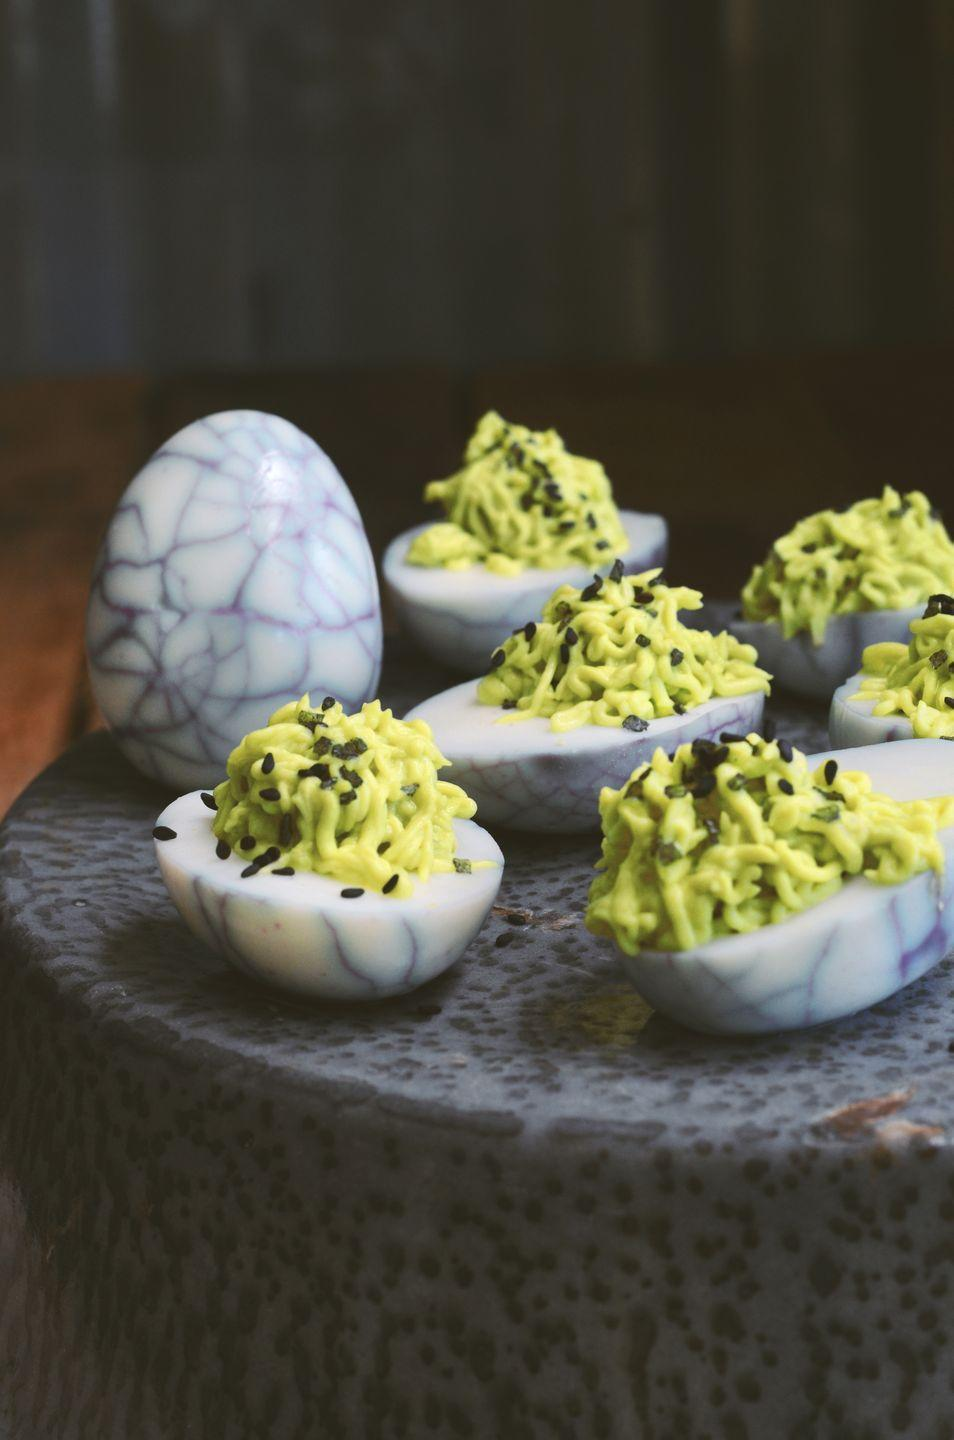 """<p>This uber-creative (and strangely pretty!) take on deviled eggs will be the talk of your party. </p><p><a class=""""link rapid-noclick-resp"""" href=""""https://familyspice.com/spider-eggs-avocado-wasabi-deviled-eggs/"""" rel=""""nofollow noopener"""" target=""""_blank"""" data-ylk=""""slk:GET THE RECIPE"""">GET THE RECIPE</a></p>"""